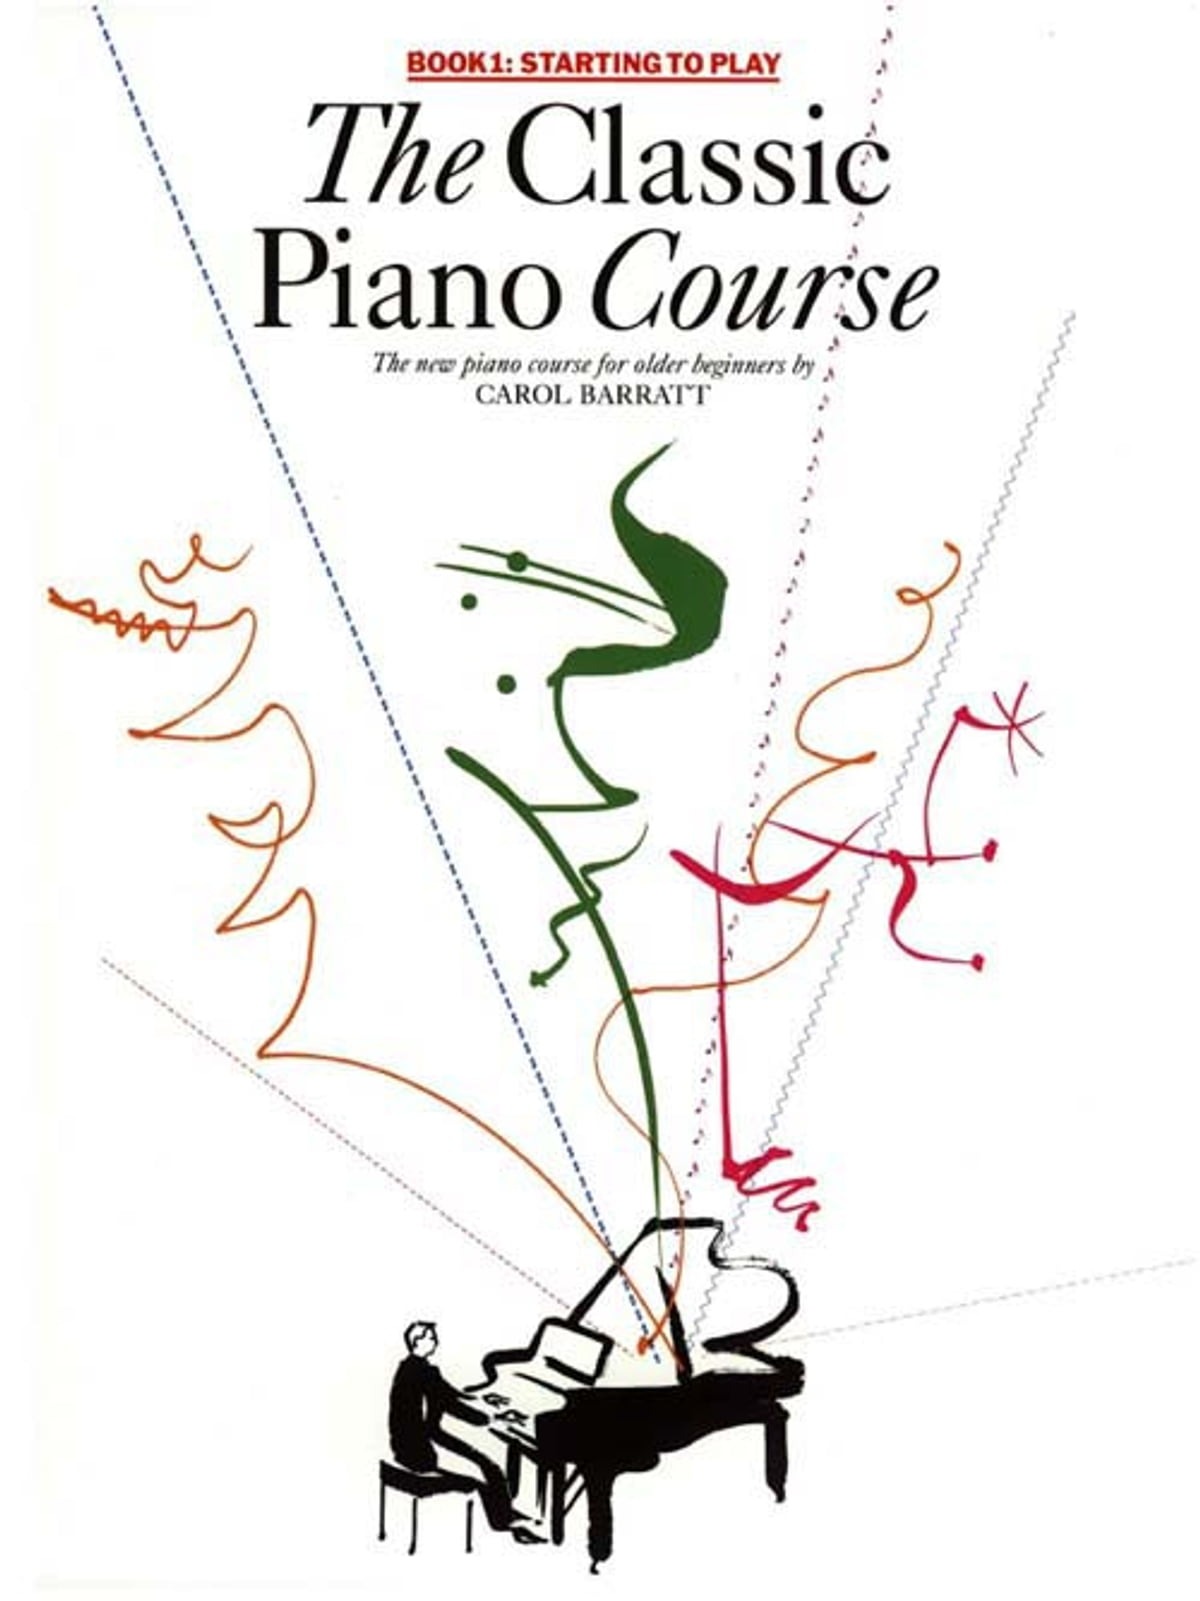 Building Your Skills Music Method Book The Classic Piano Course Book 2